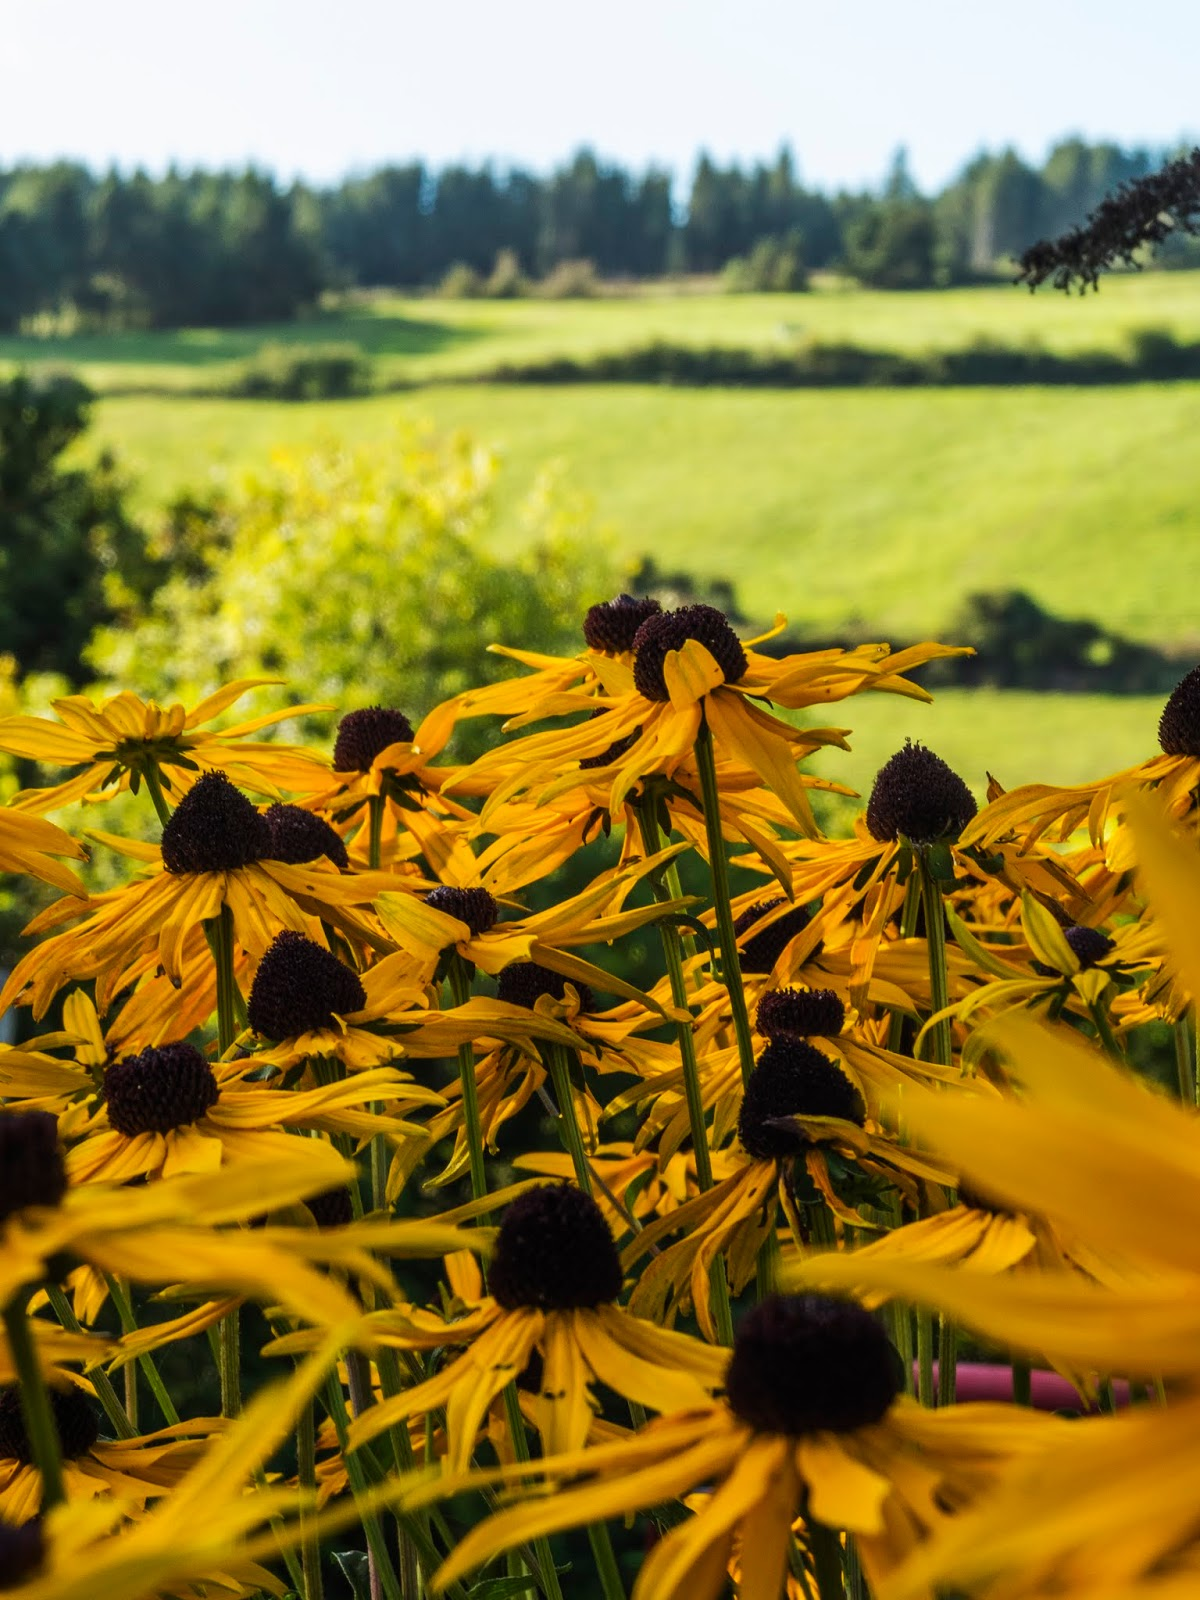 Black Eyed Susan flowers against a mountain side back drop.